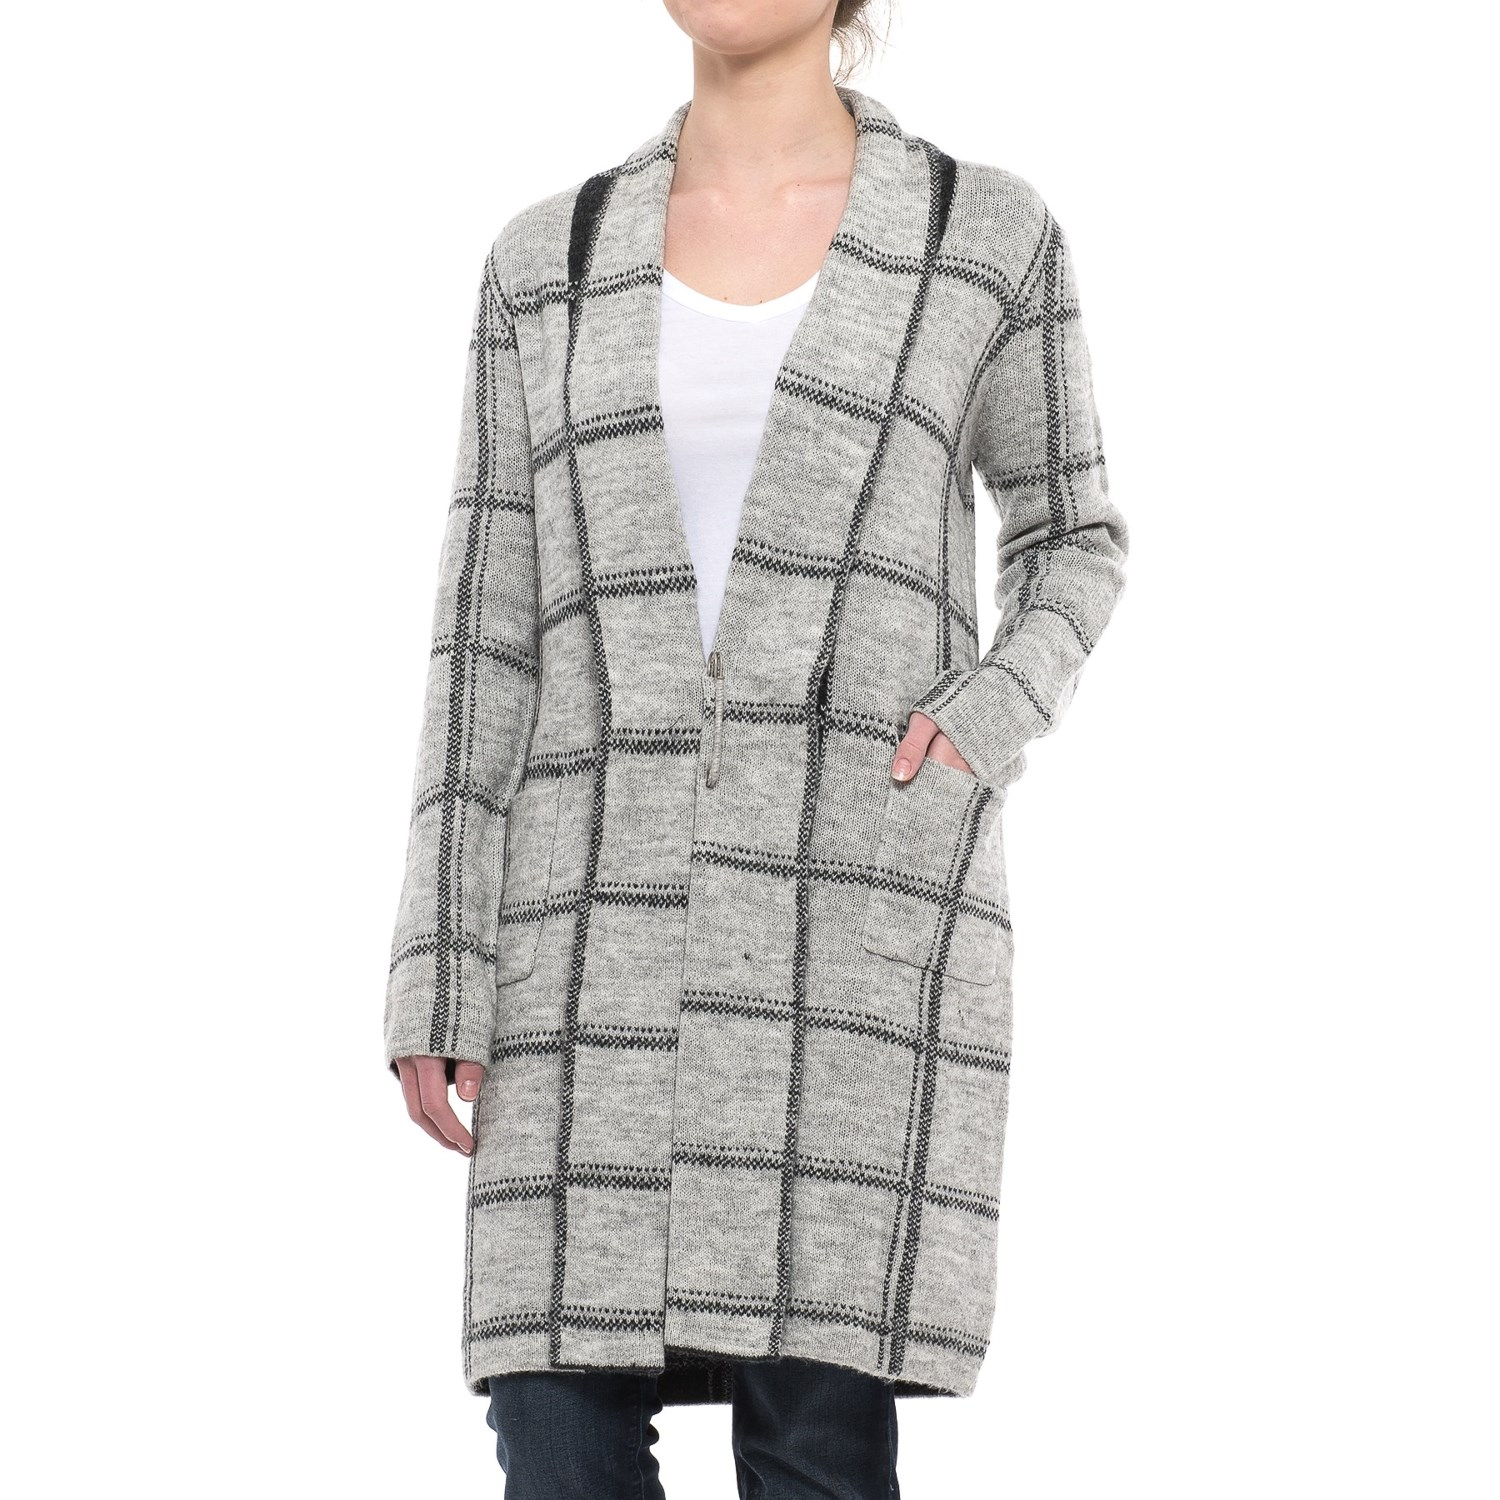 Tahari Recovery Yarn Patterned Cardigan Sweater (For Women) - Save 50%